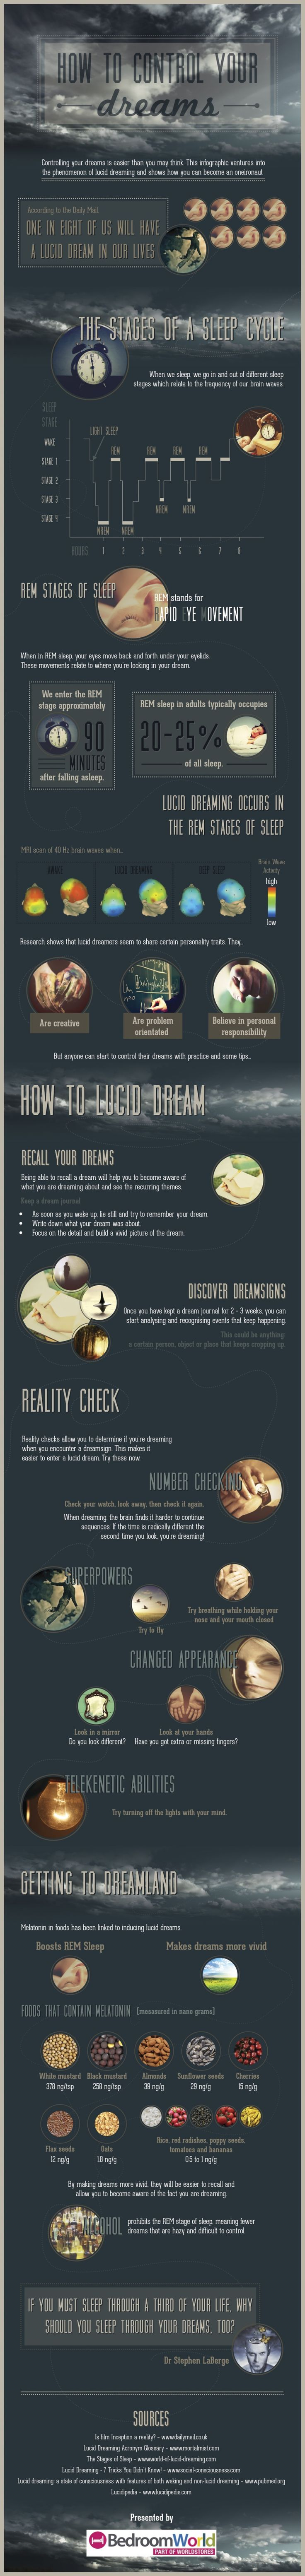 Your Ultimate Guide to Lucid Dreaming Infographic